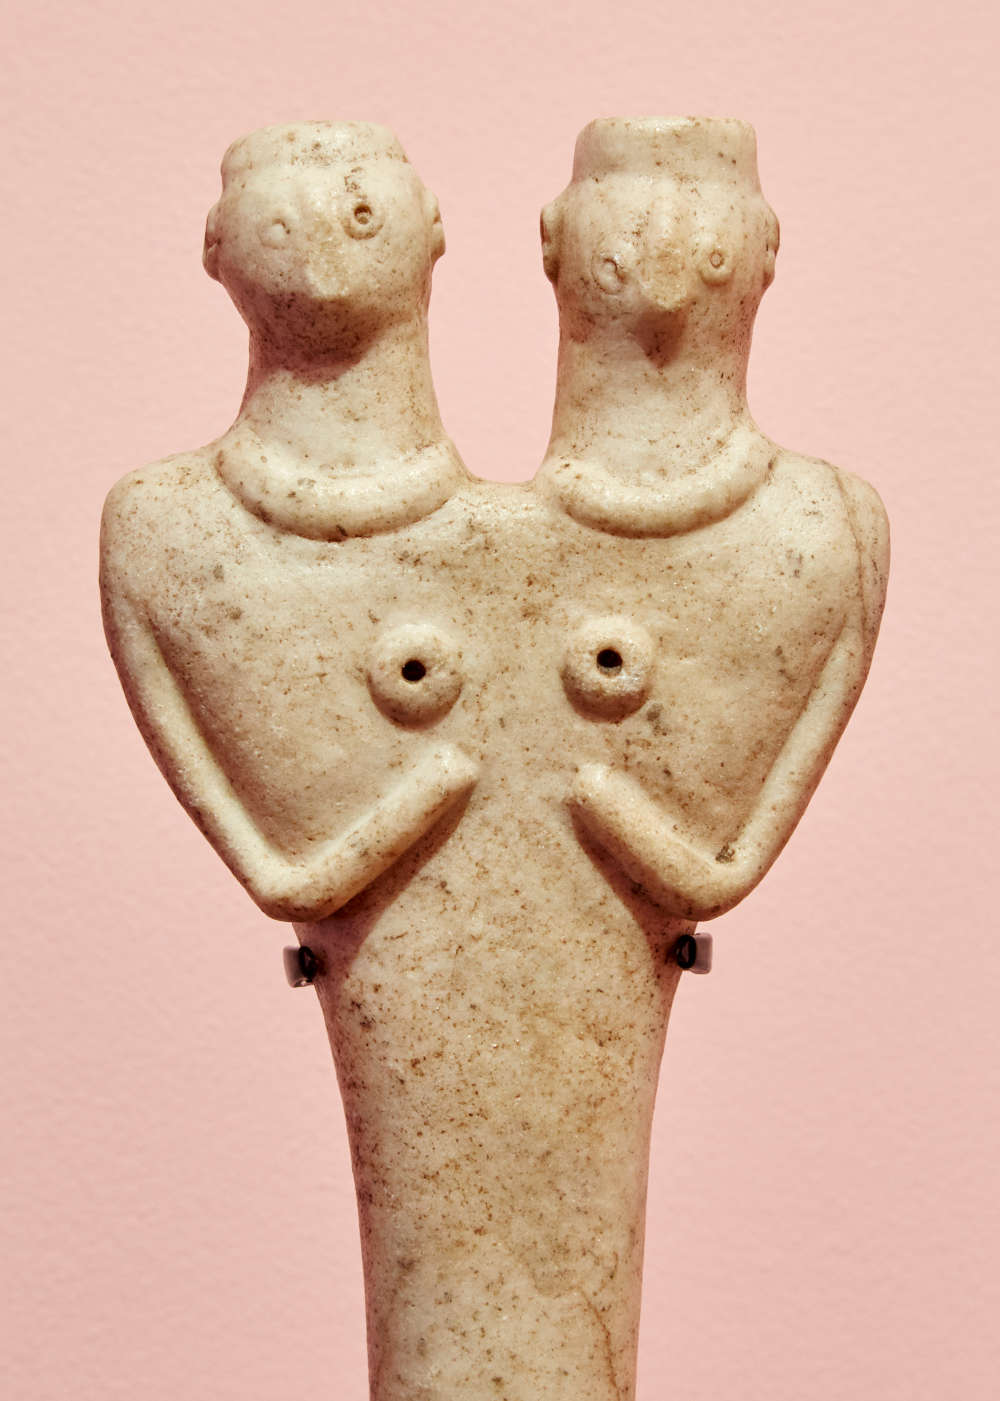 Conjoined Syrio-Hittite Sculpture, 2700 - 1500 BCE